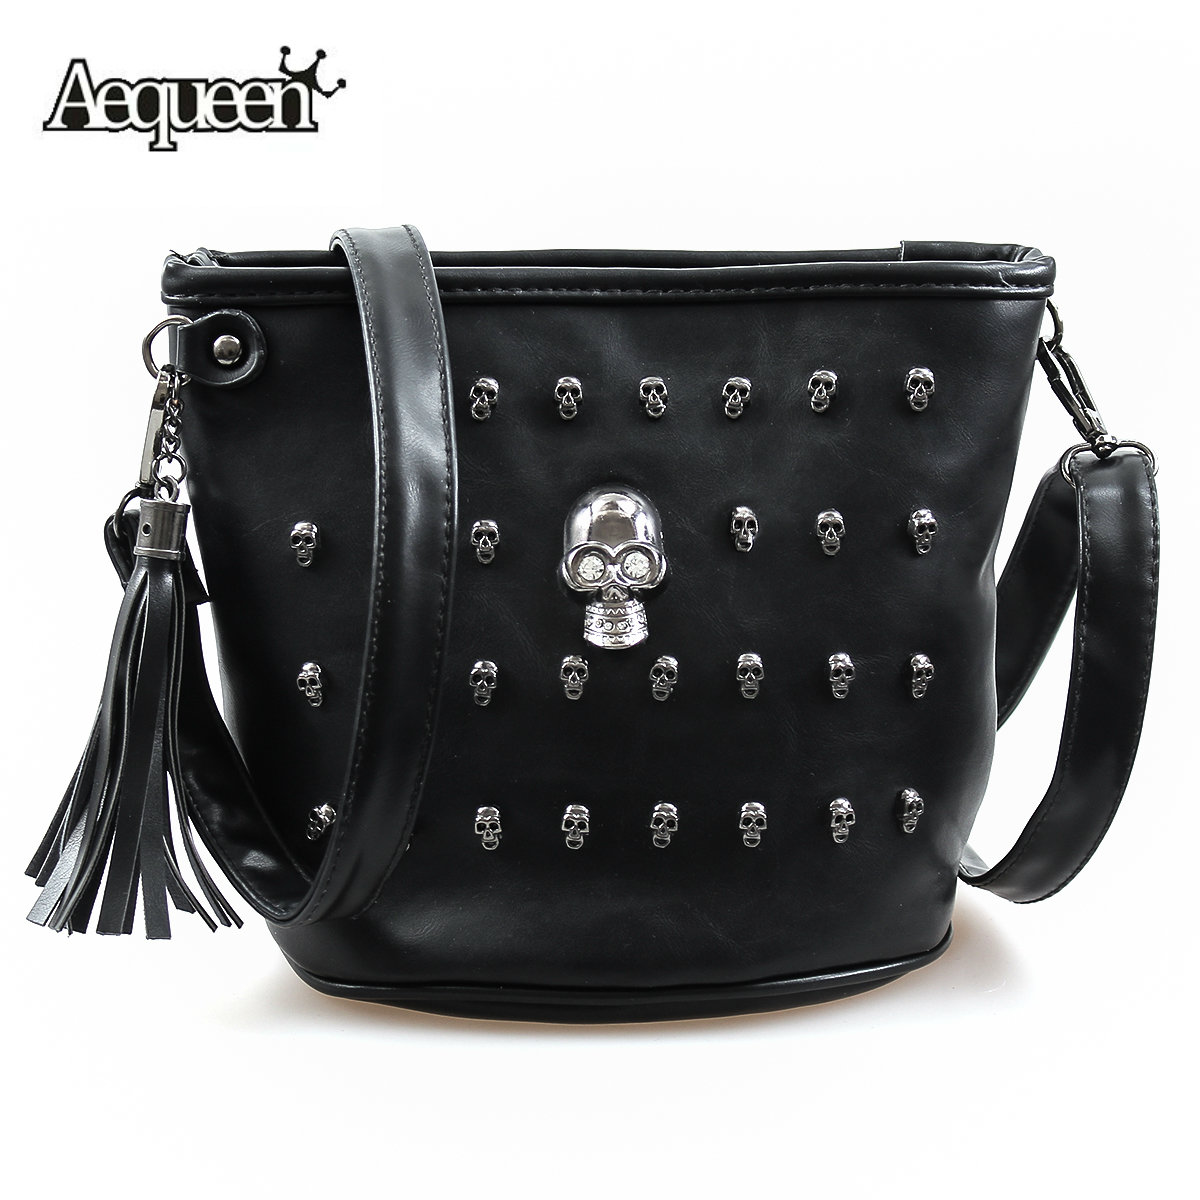 1e10d9fc3662 Detail Feedback Questions about AEQUEEN Fashion Shoulder Bags Skull ...